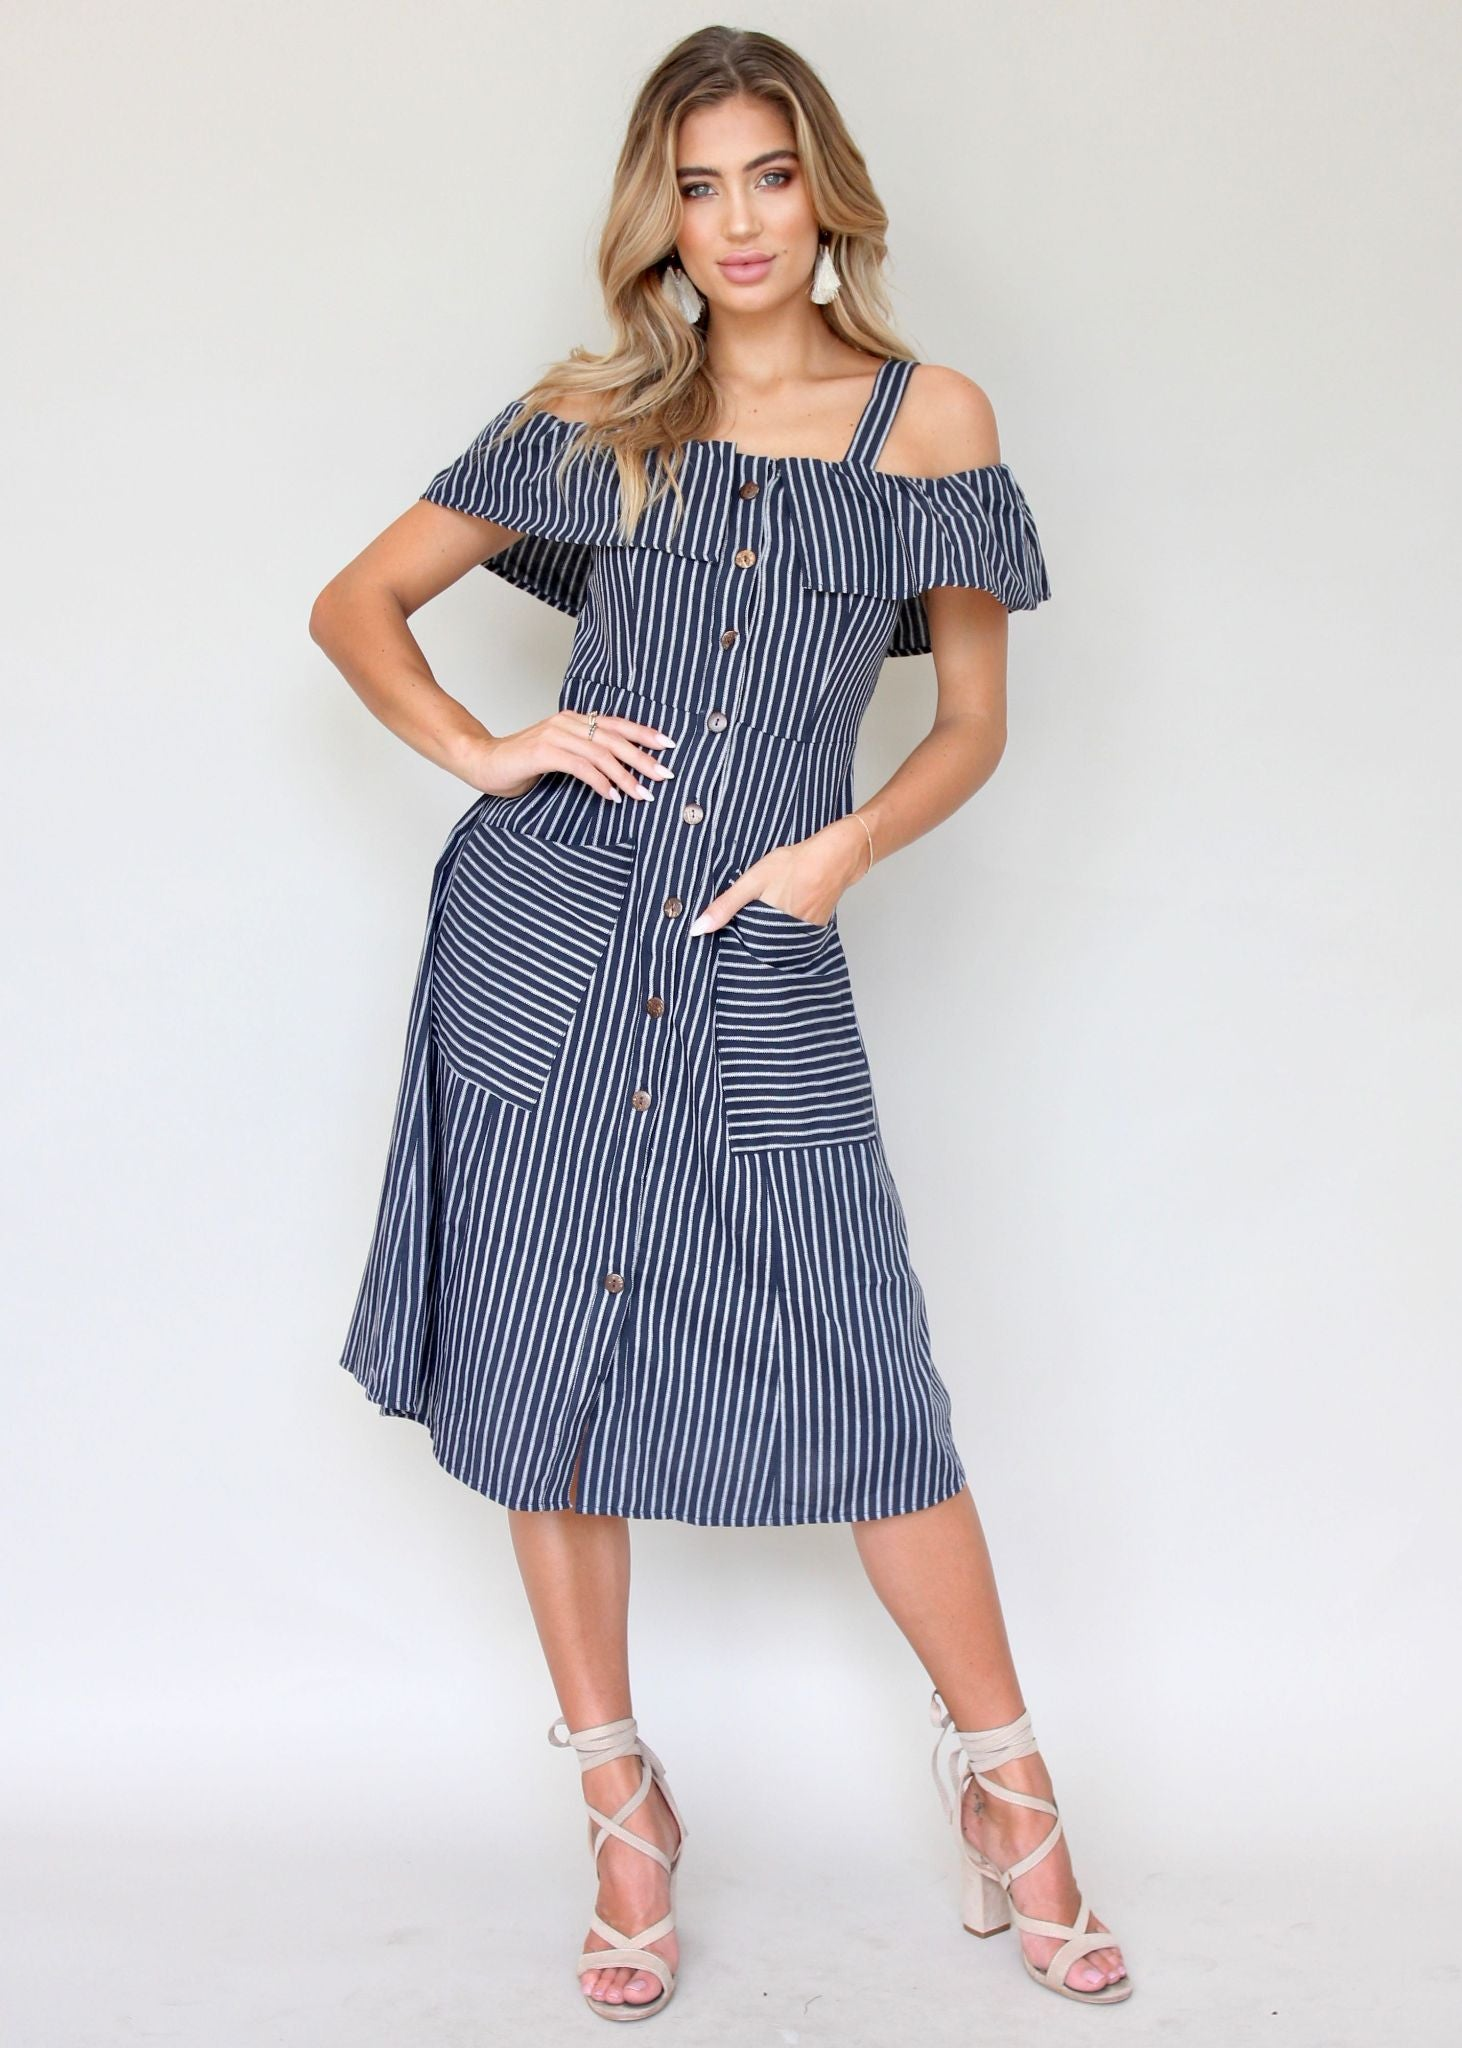 End Game Dress - Navy Stripe